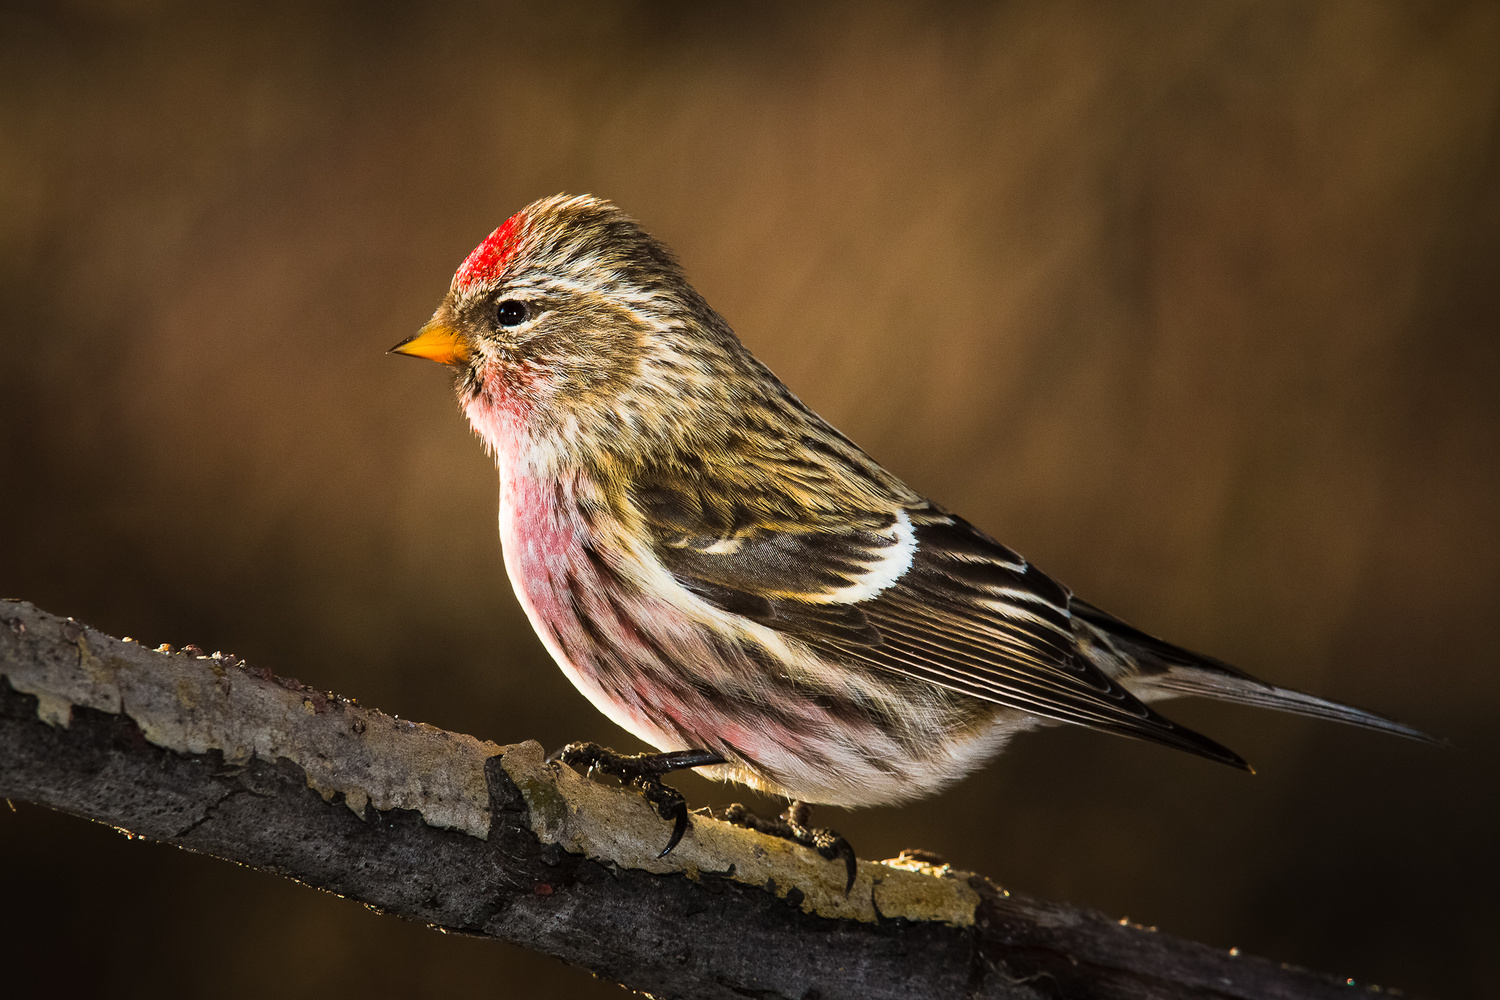 Common Redpoll by Charles Mcdonald